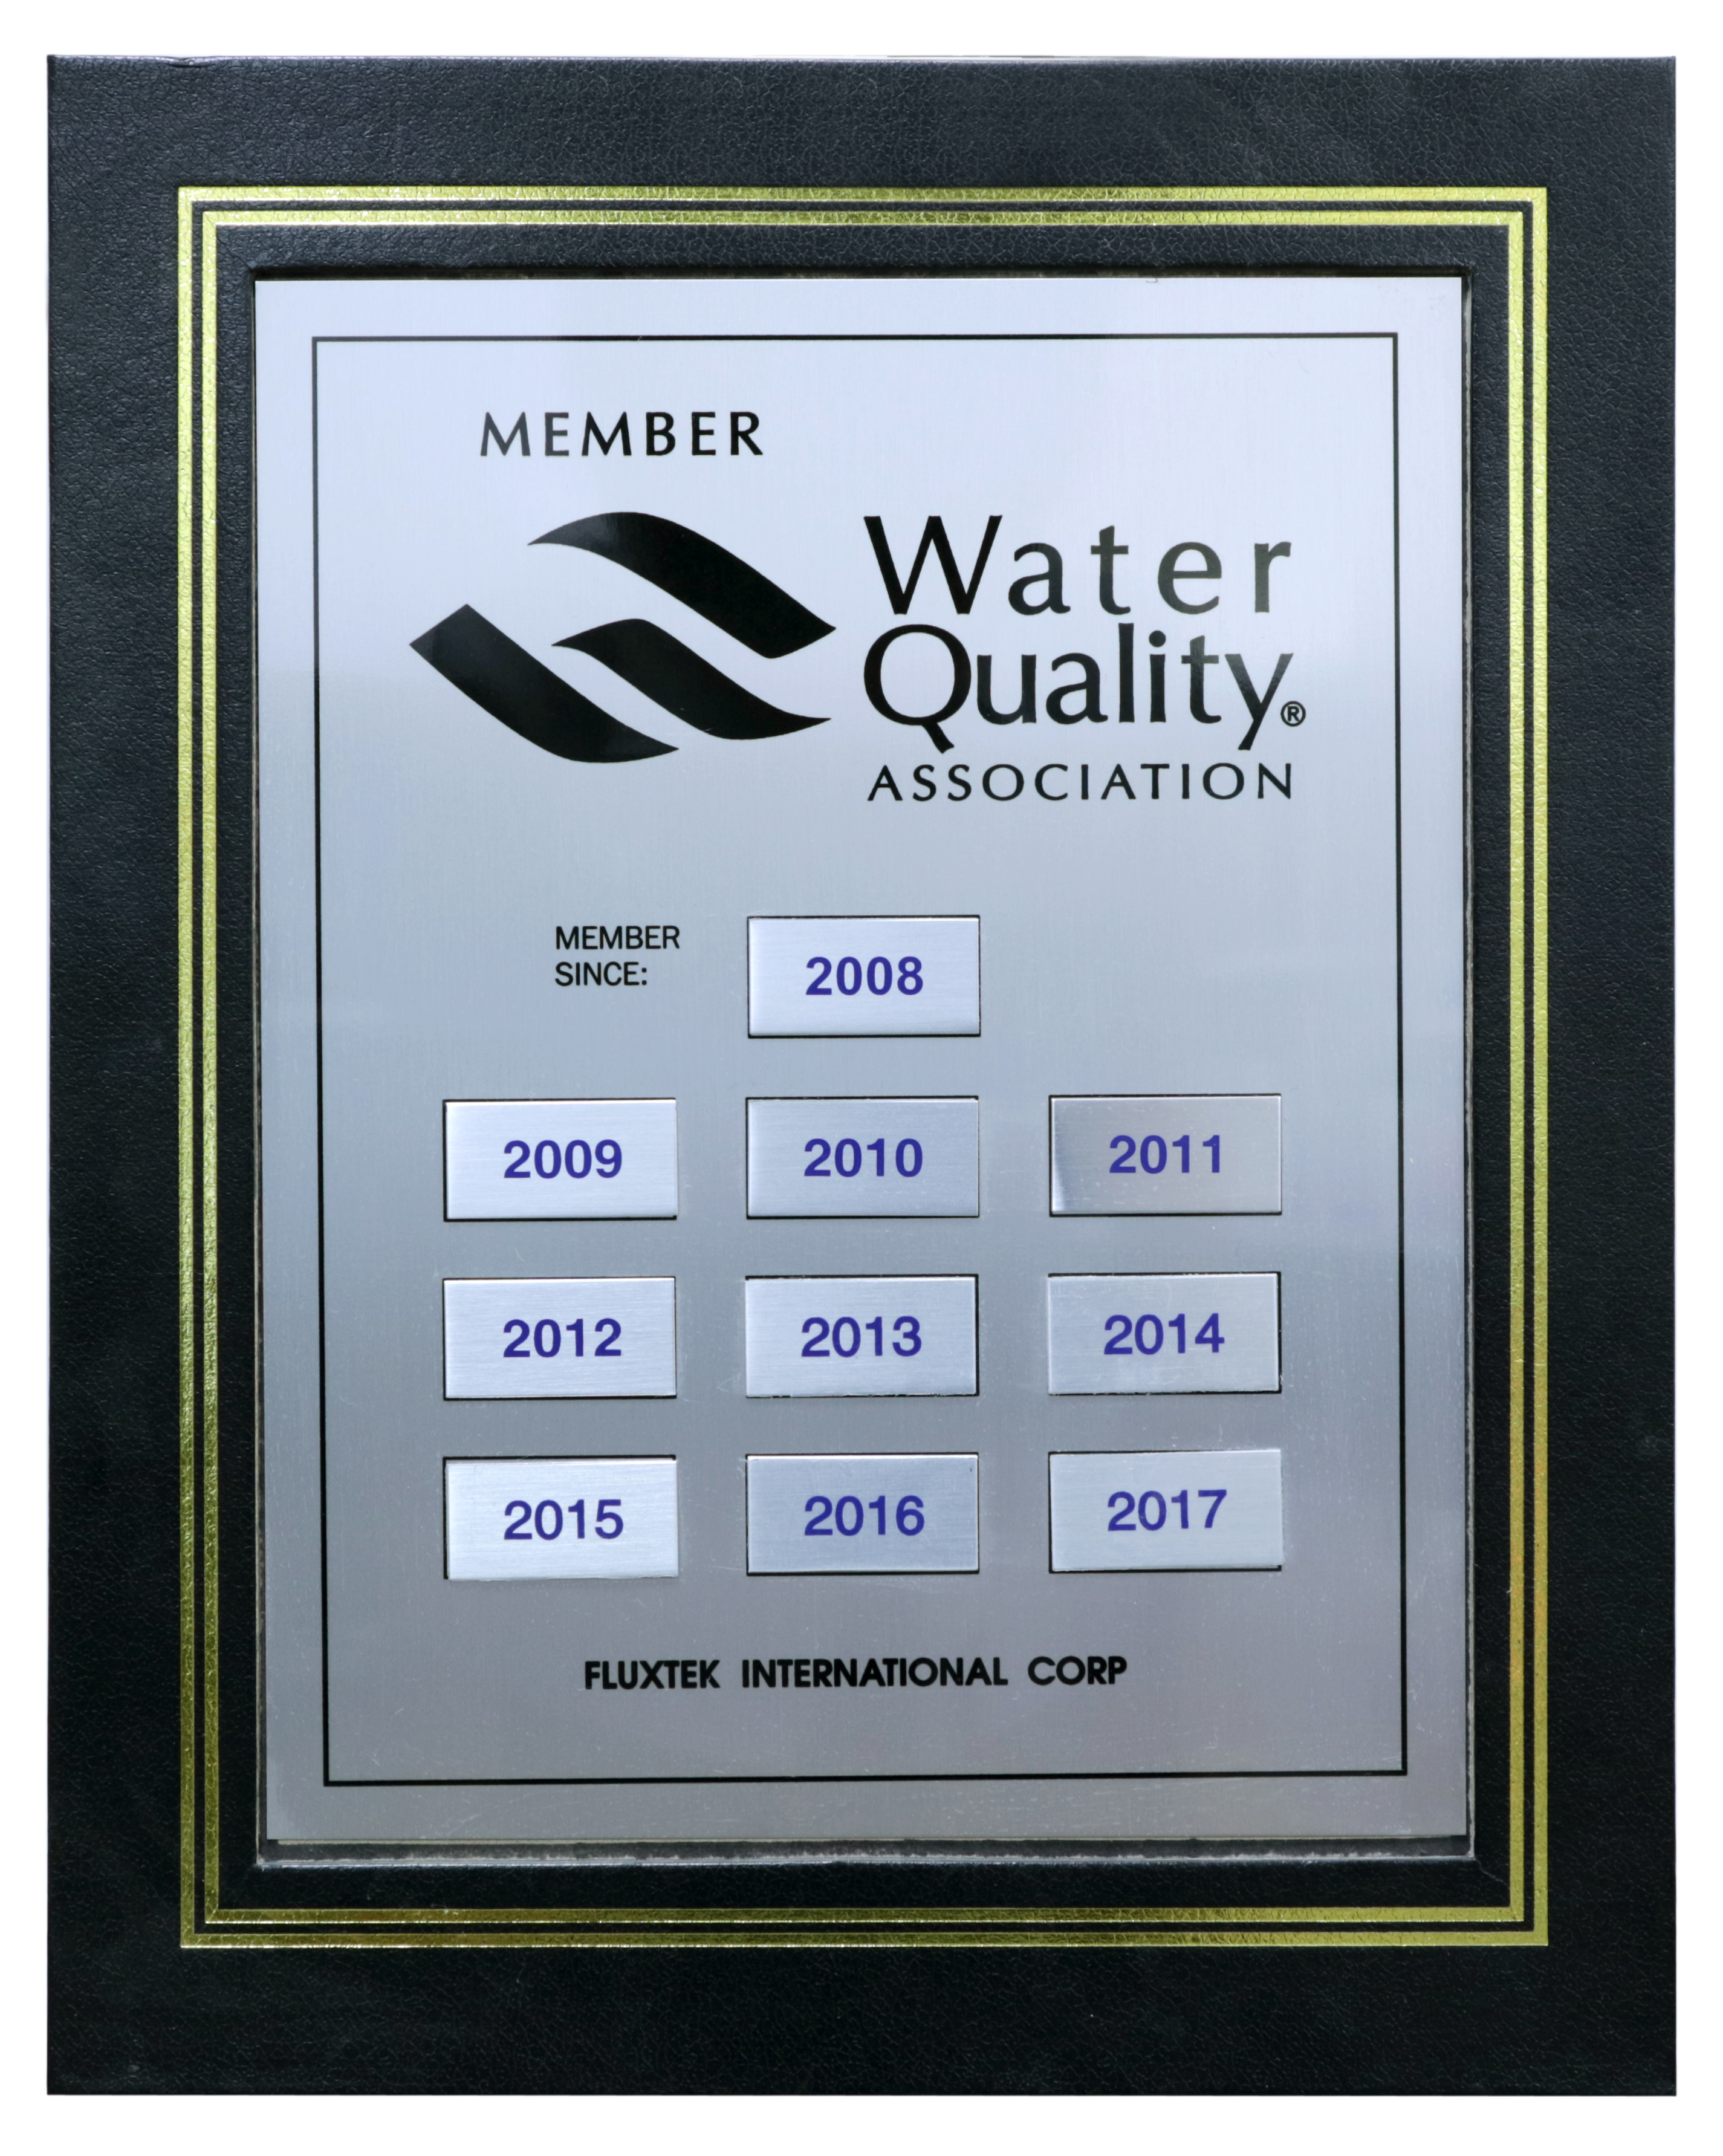 Water Quality Association 2008-2017